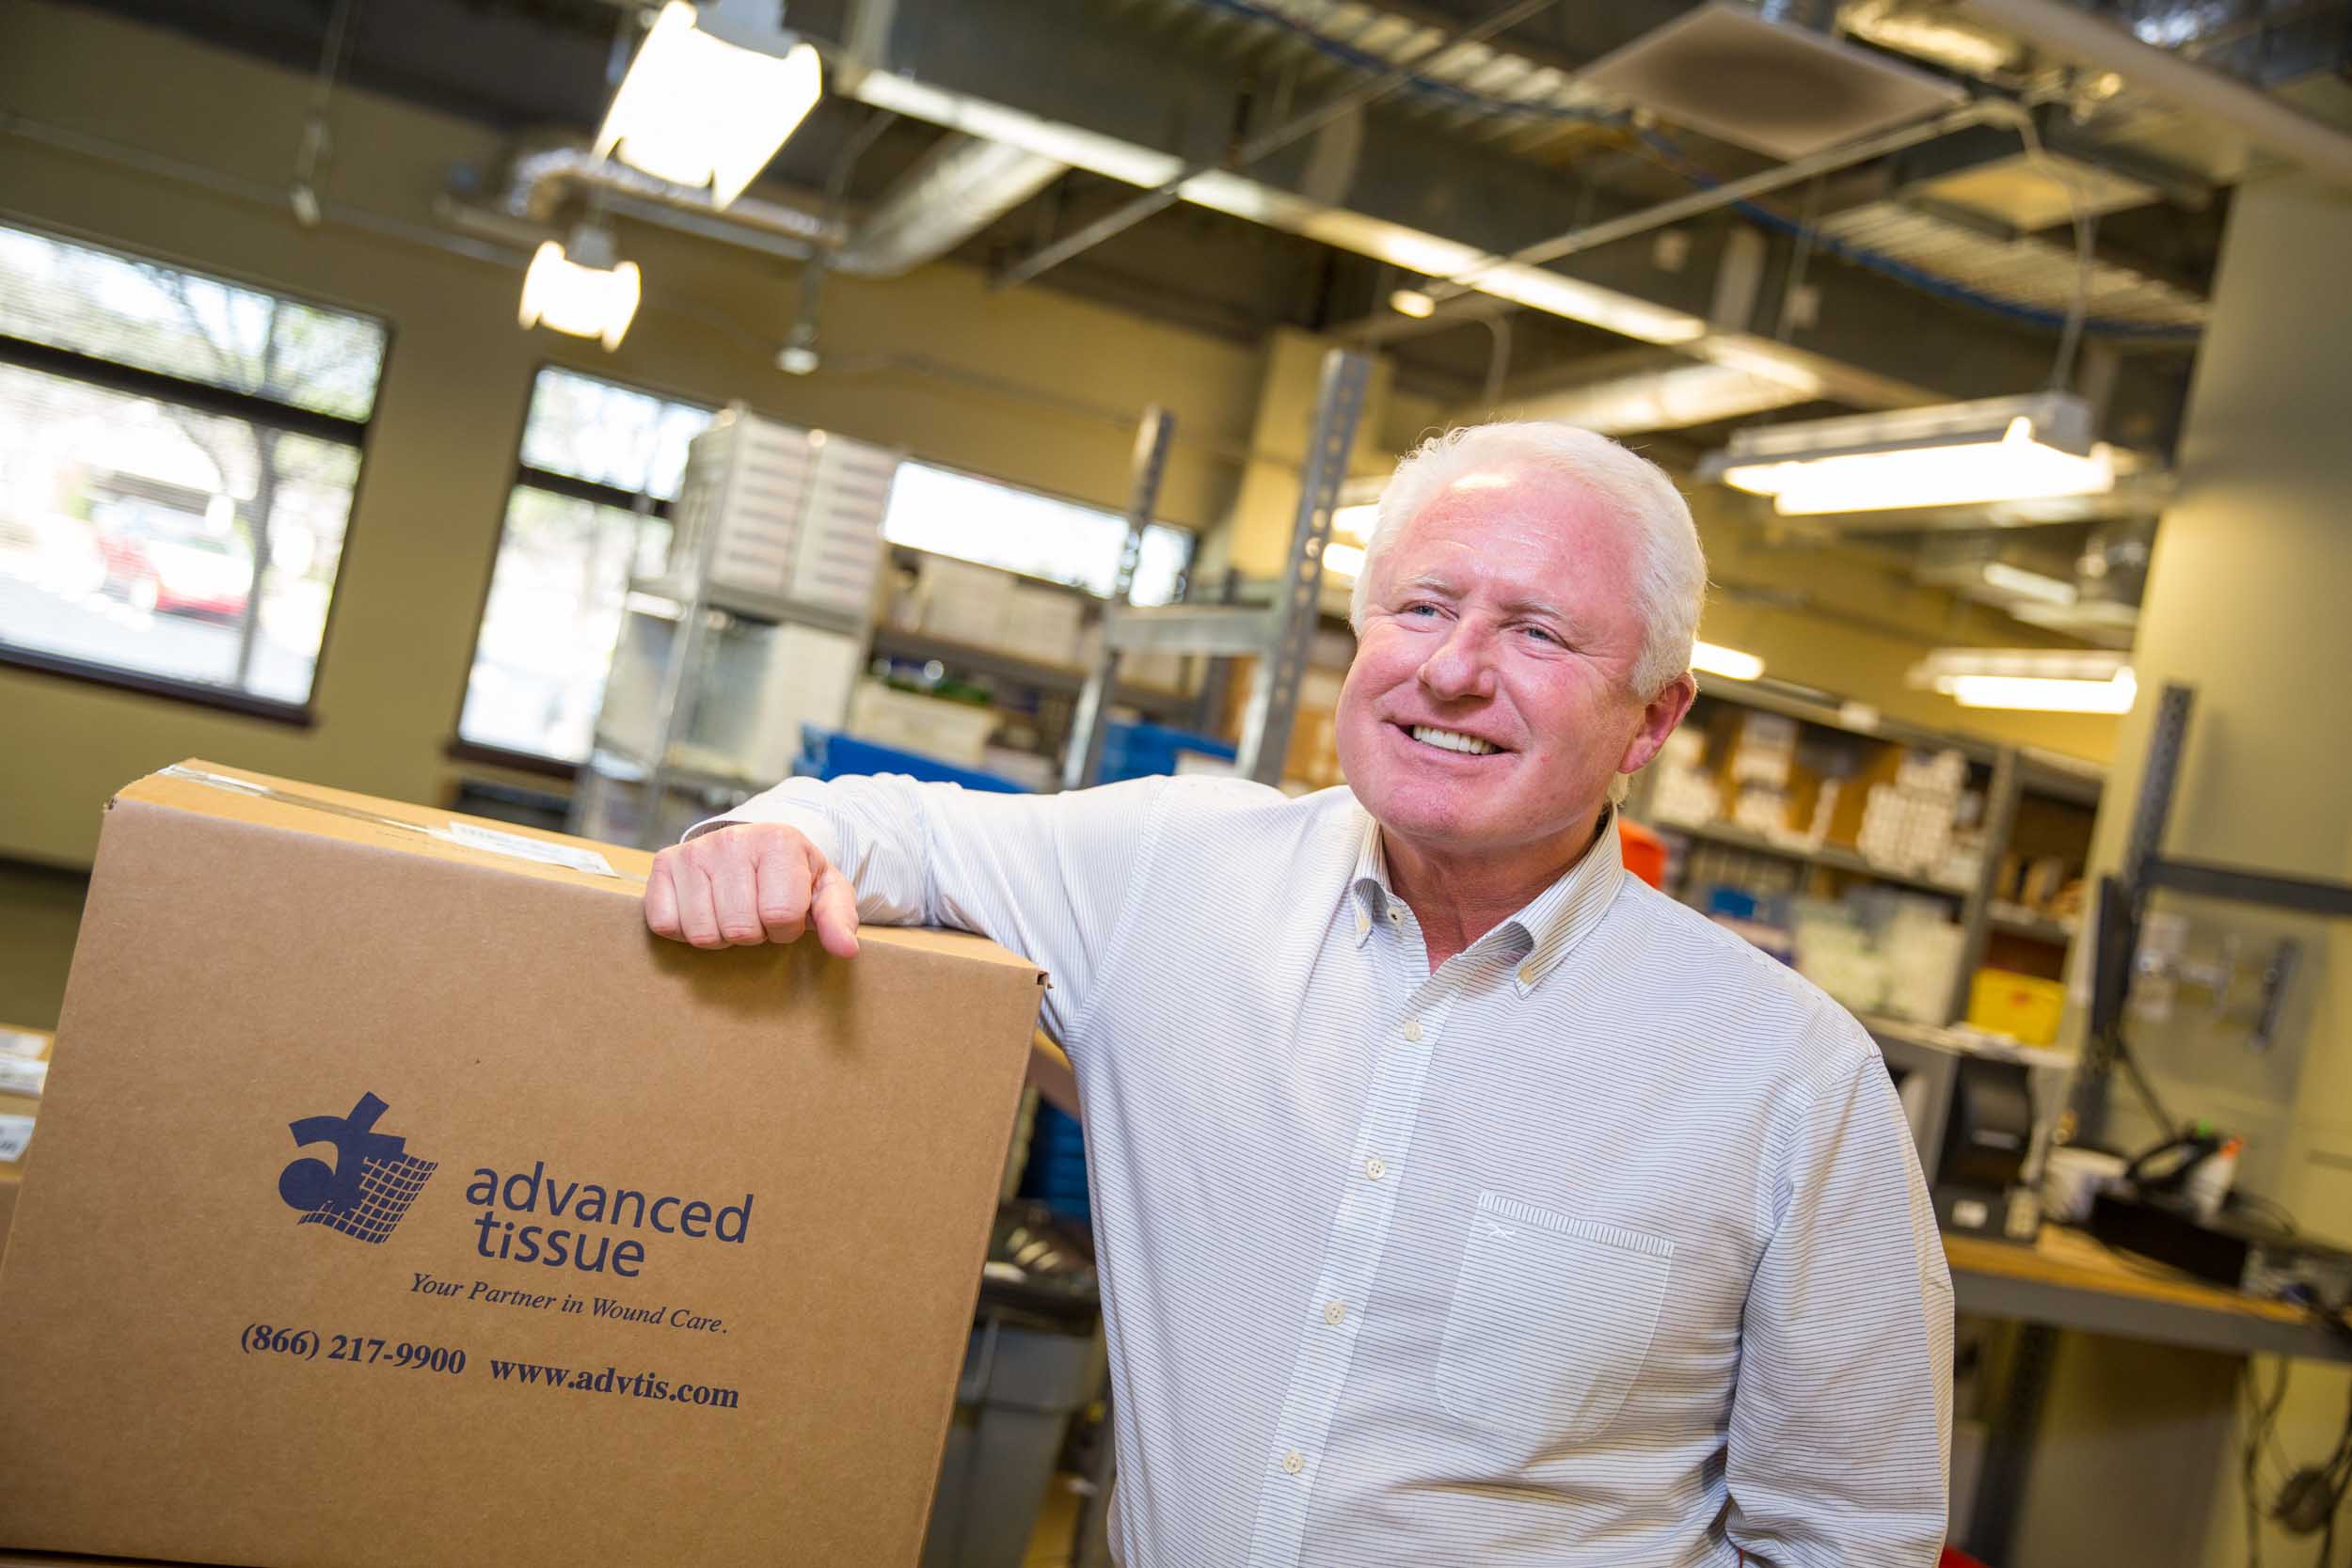 CEO of Advanced Tissue – Kevin Lamb